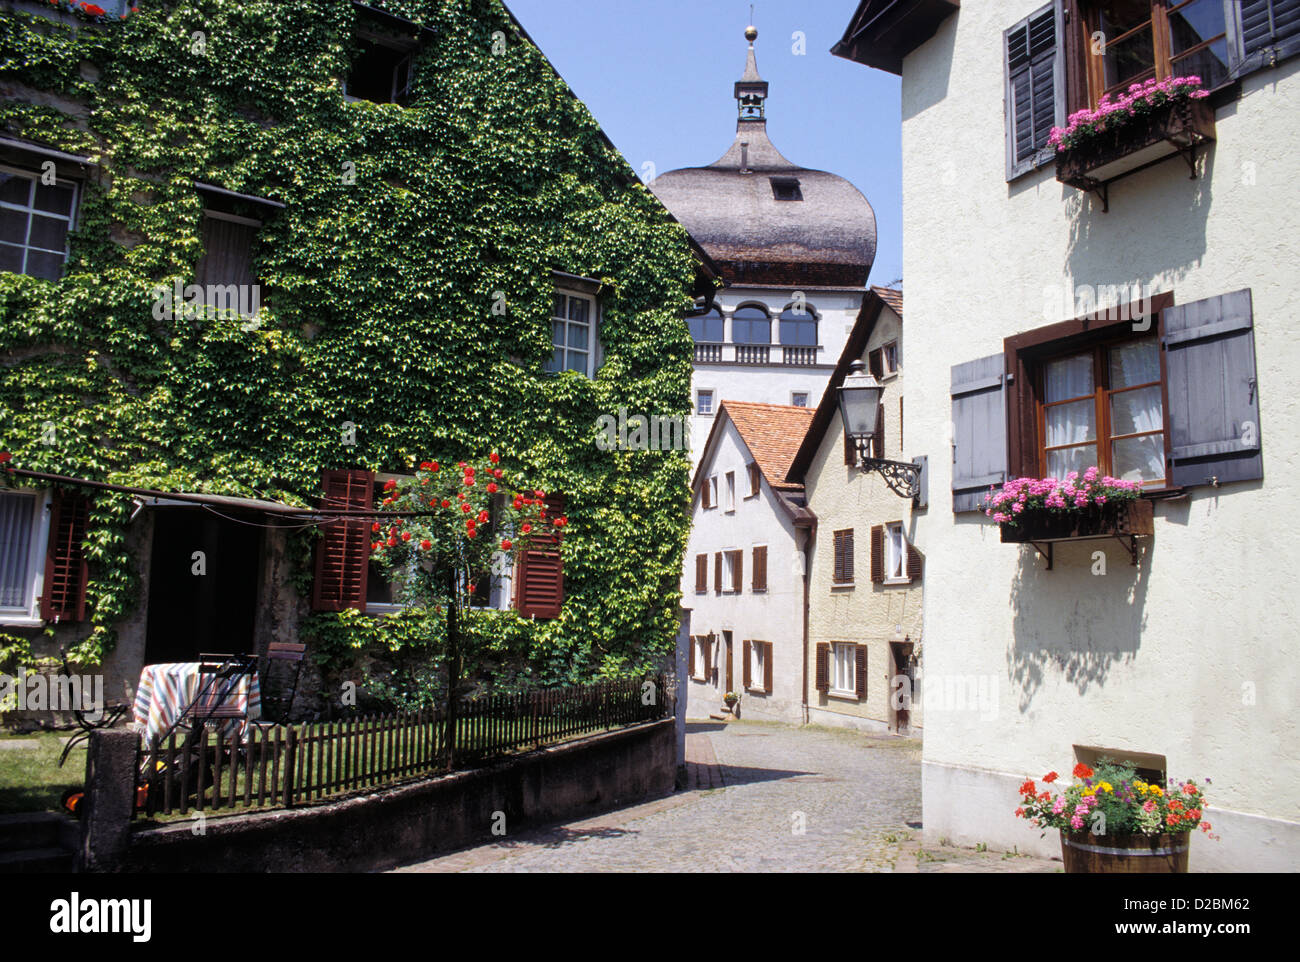 Austria, Bregenz, Upper Town. Street Scene With St. Martin'S Tower In Background. Stock Photo